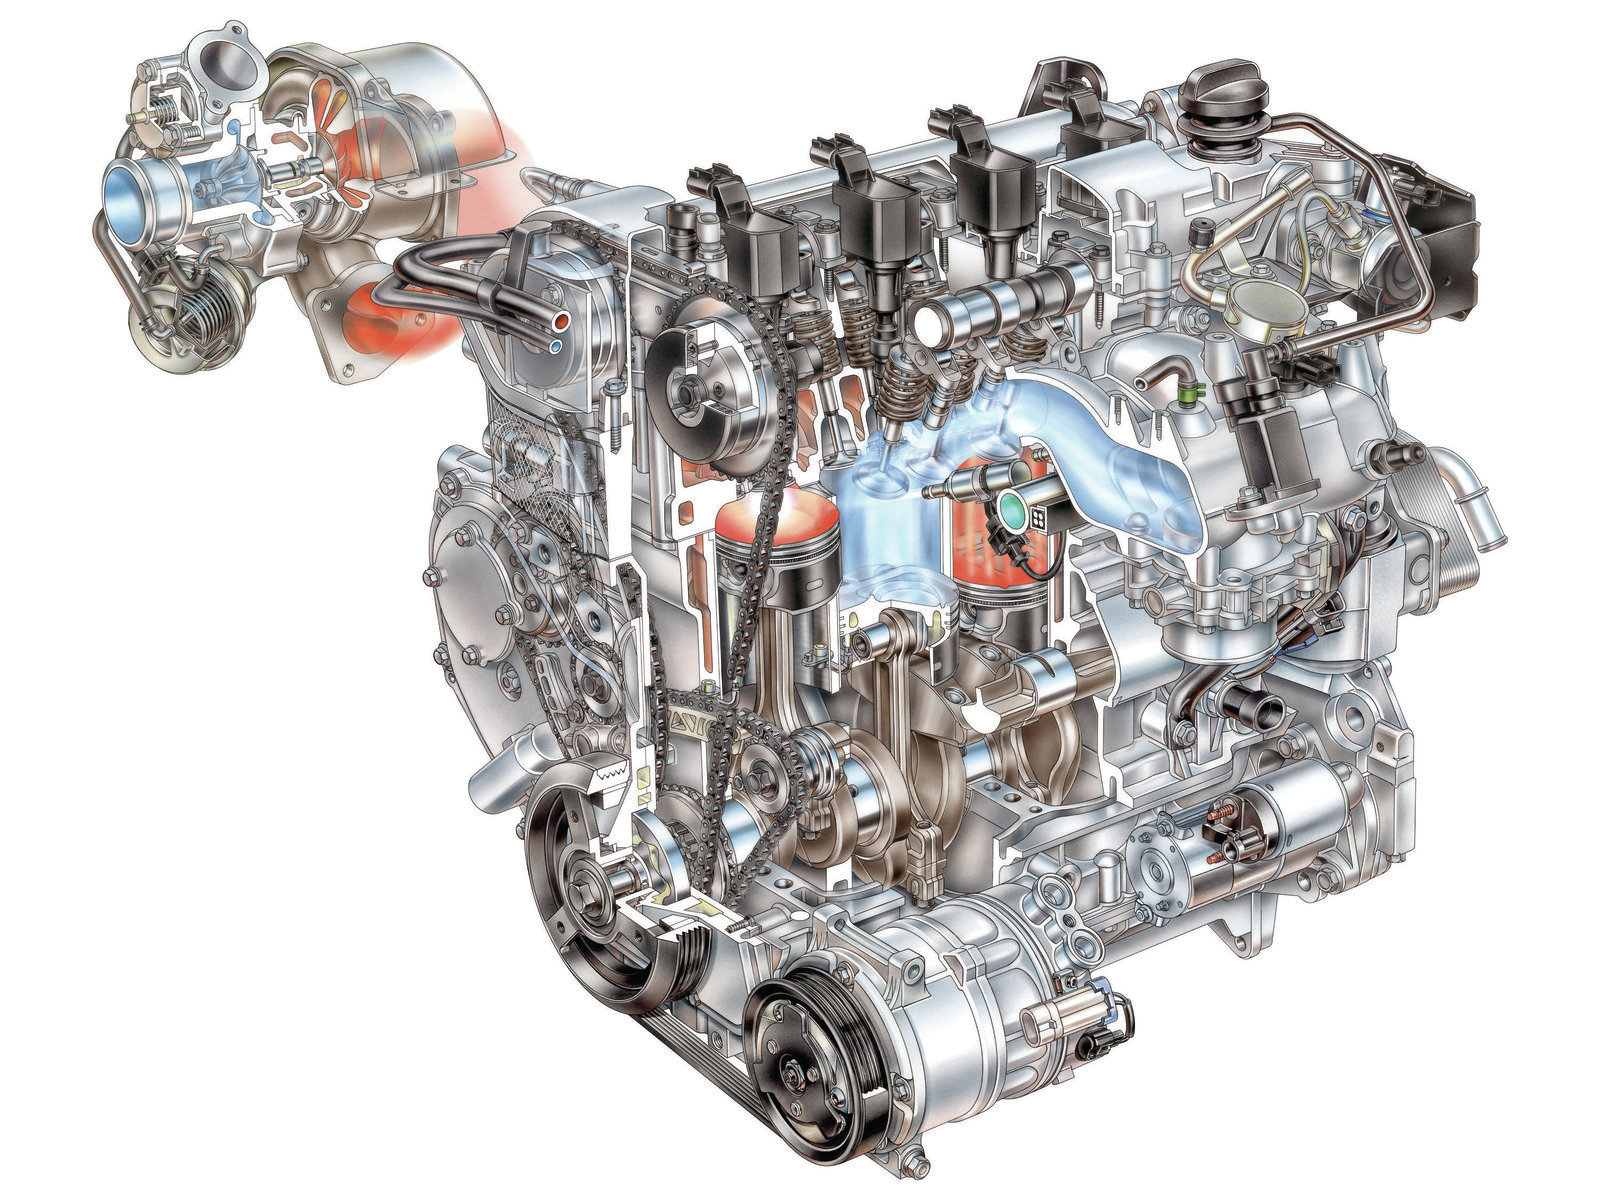 The GM Ecotec Gen II 2.0L (122 ci) engine has DI, a dual-scroll turbo, and continuously variable valve timing for both intake and exhaust valves. Rated under conservative SAE J1349 standards, it pumps out 260 net horsepower. That's more than 2.13 hp/ci, one of the highest output per cubic inch of any production automobile engine ever! There's already a factory upgrade package for it.